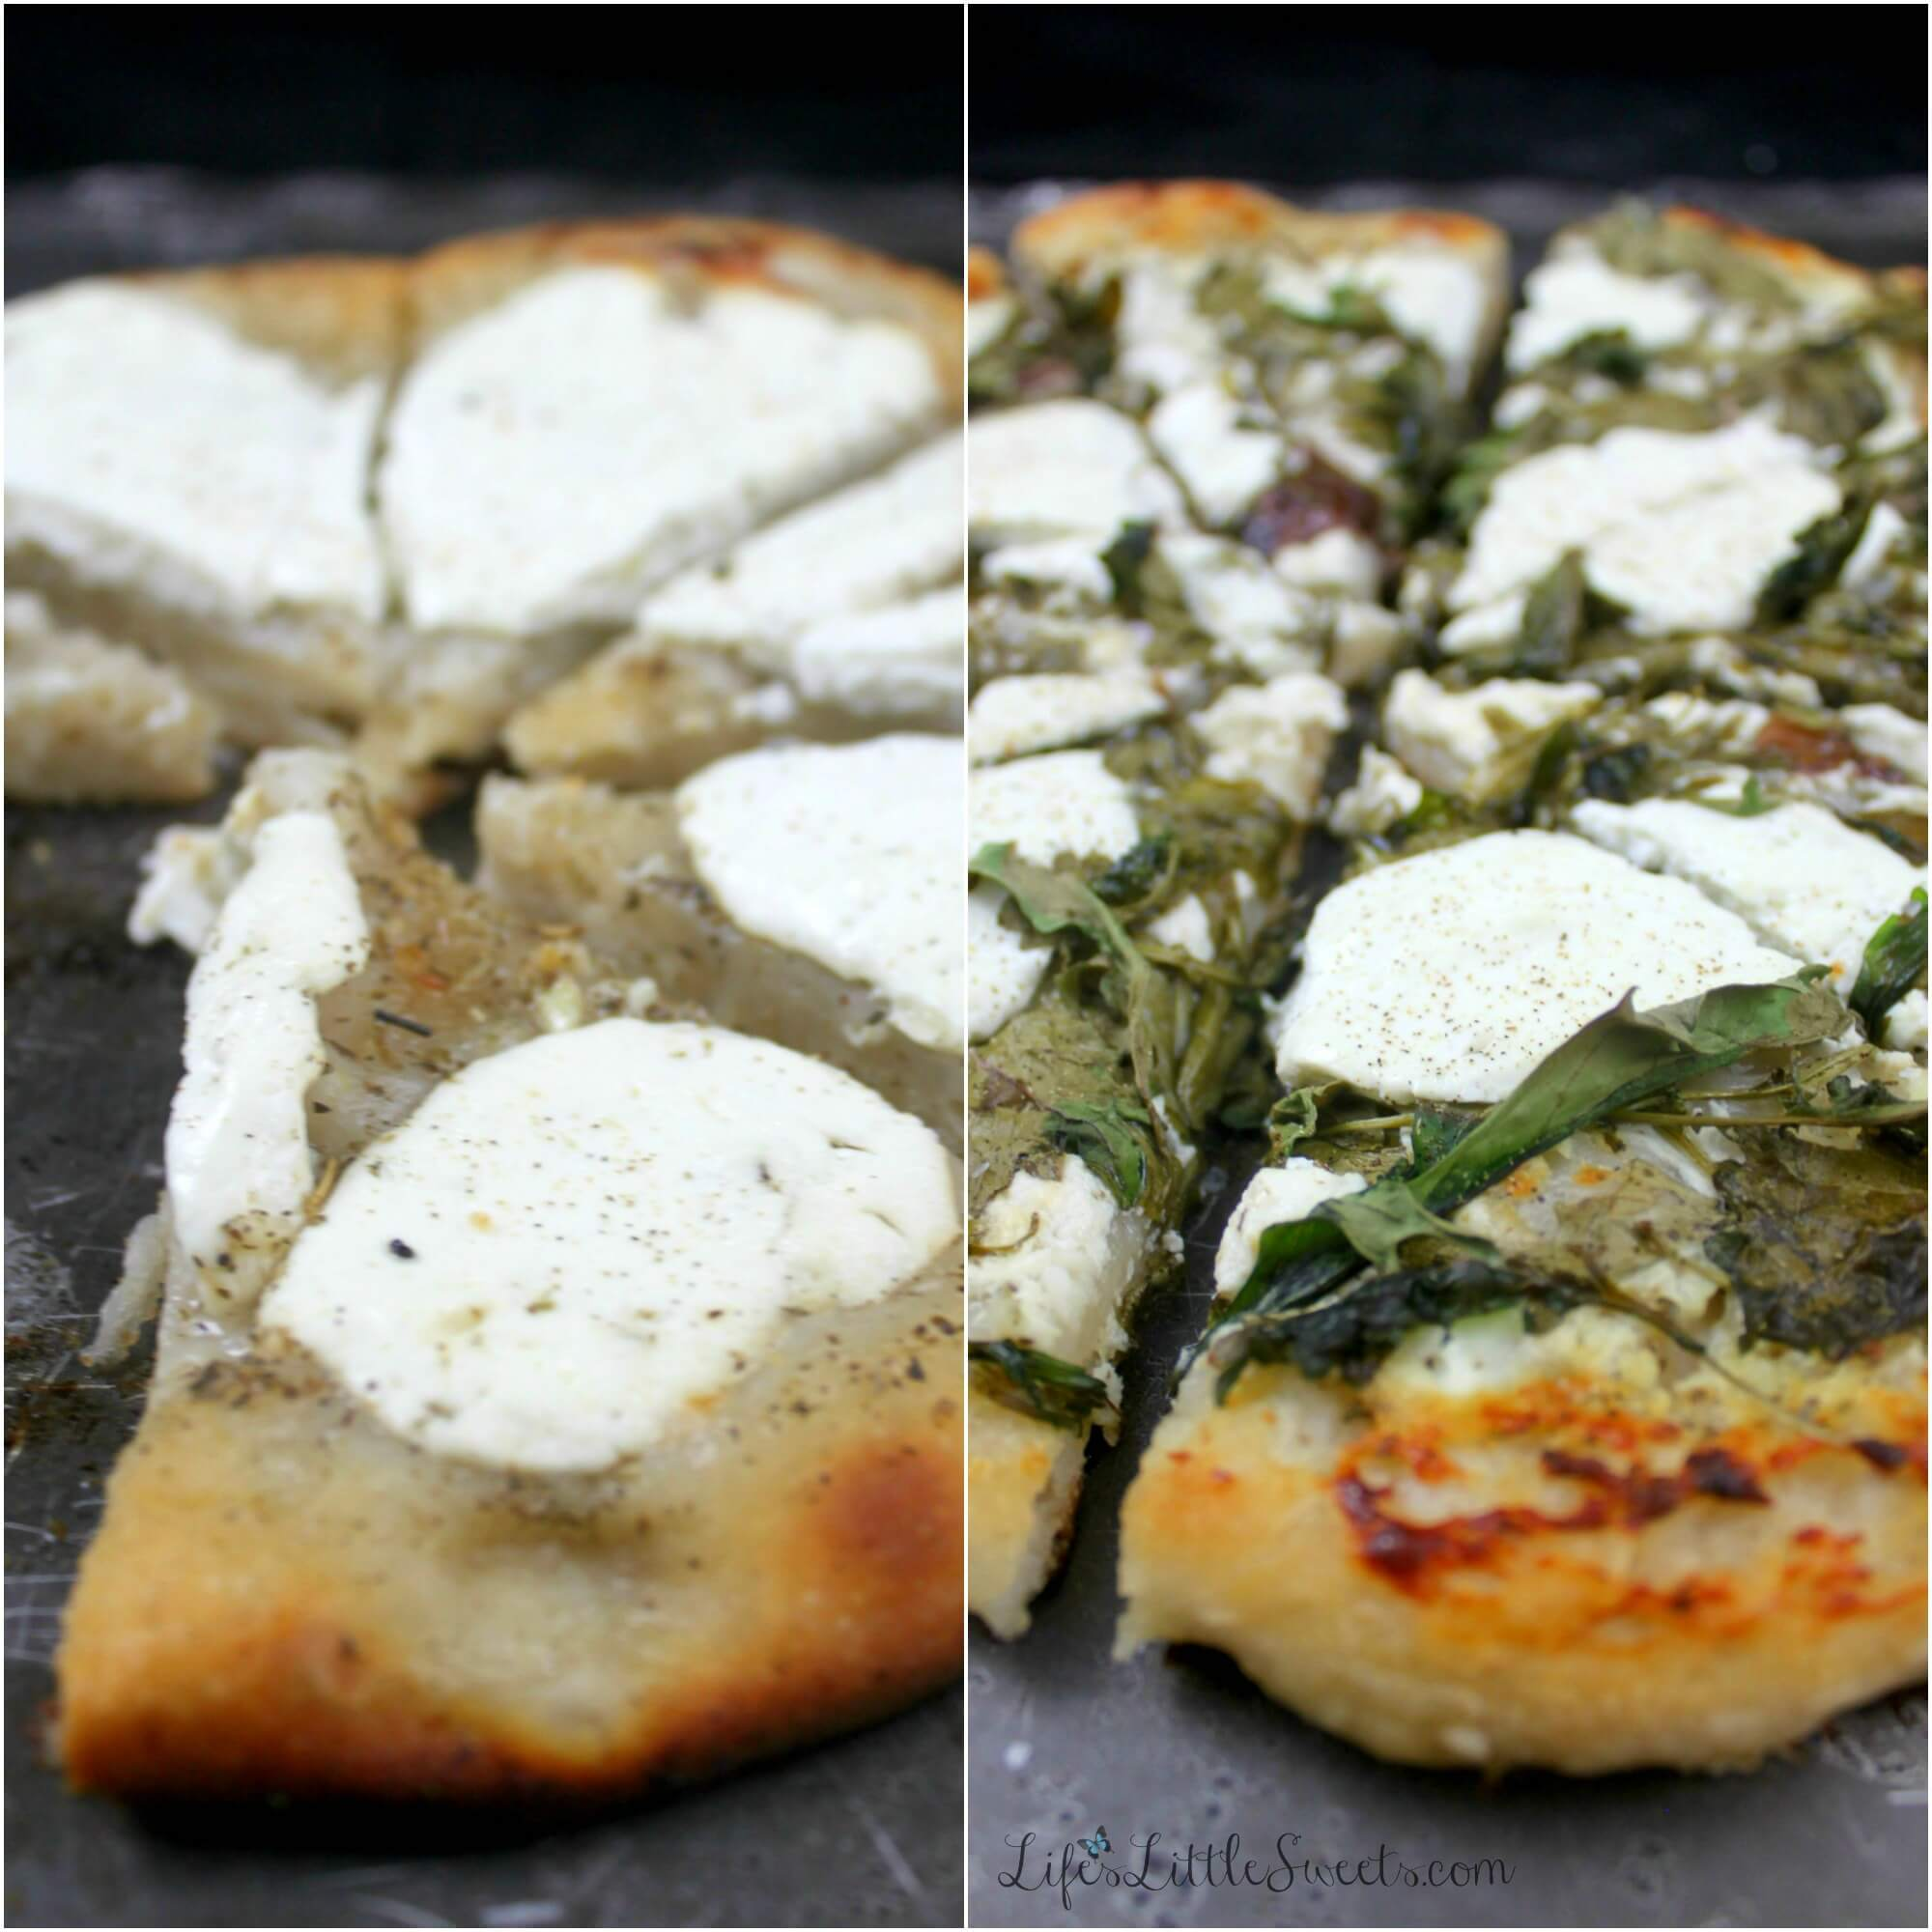 This 5-ingredient White Pizza uses Chobani® Non-Fat Plain Greek Yogurt, instead of cheese, it's easy to make and will be your new favorite way to make a white pizza! #HolidayWithChobani #CollectiveBias #ad